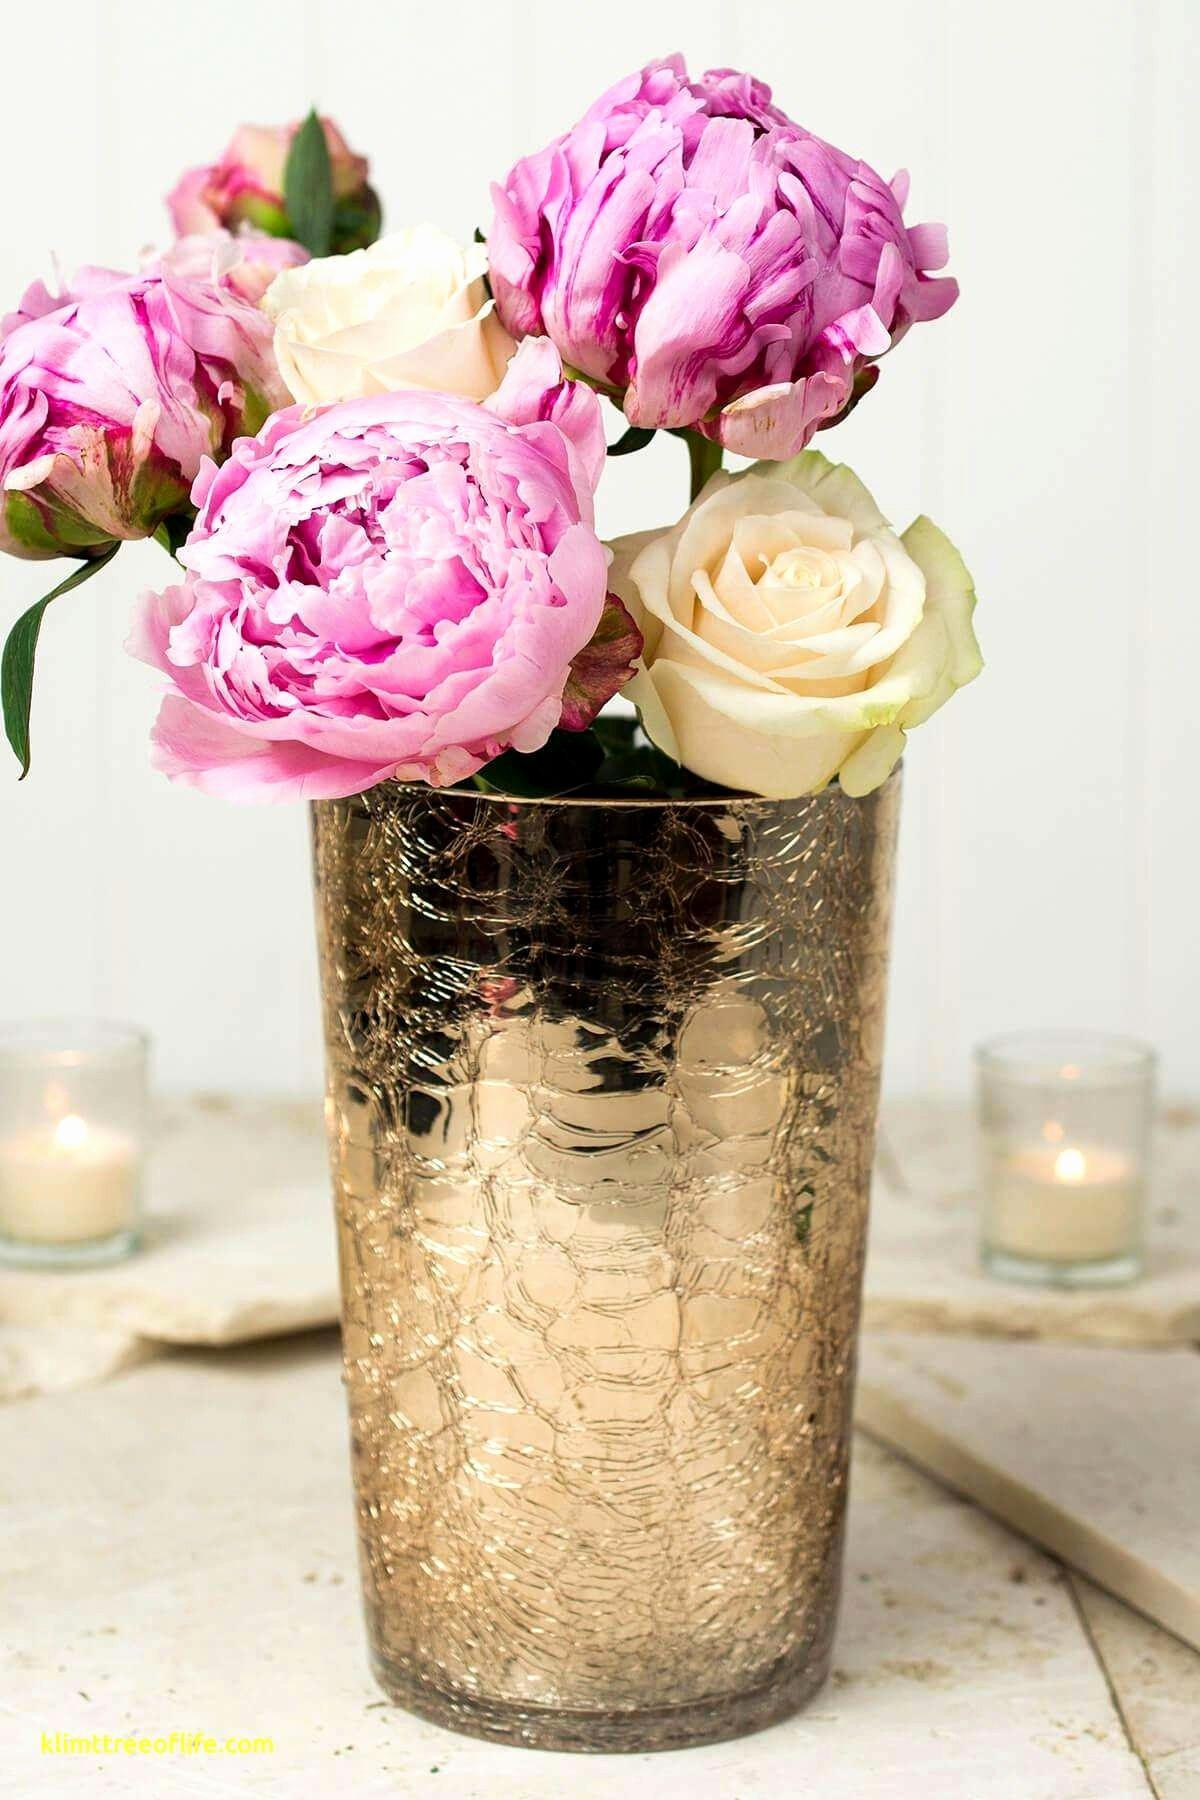 25 Stylish Lotus Flower Vase